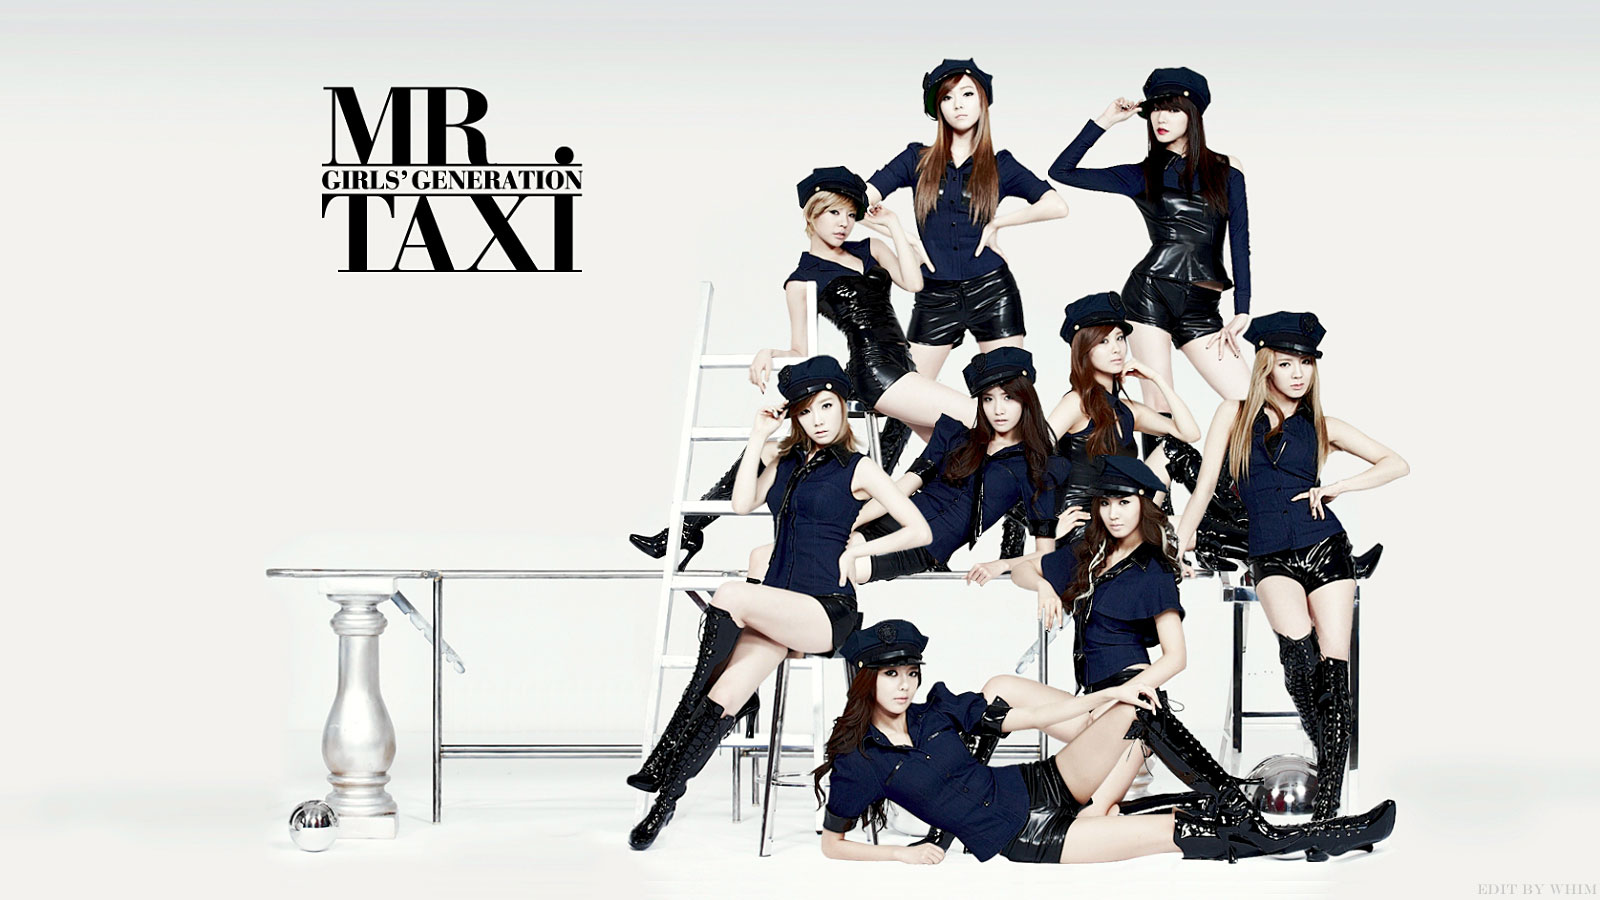 Girls Generation mr mr Album Cover Girls Generation mr Taxi